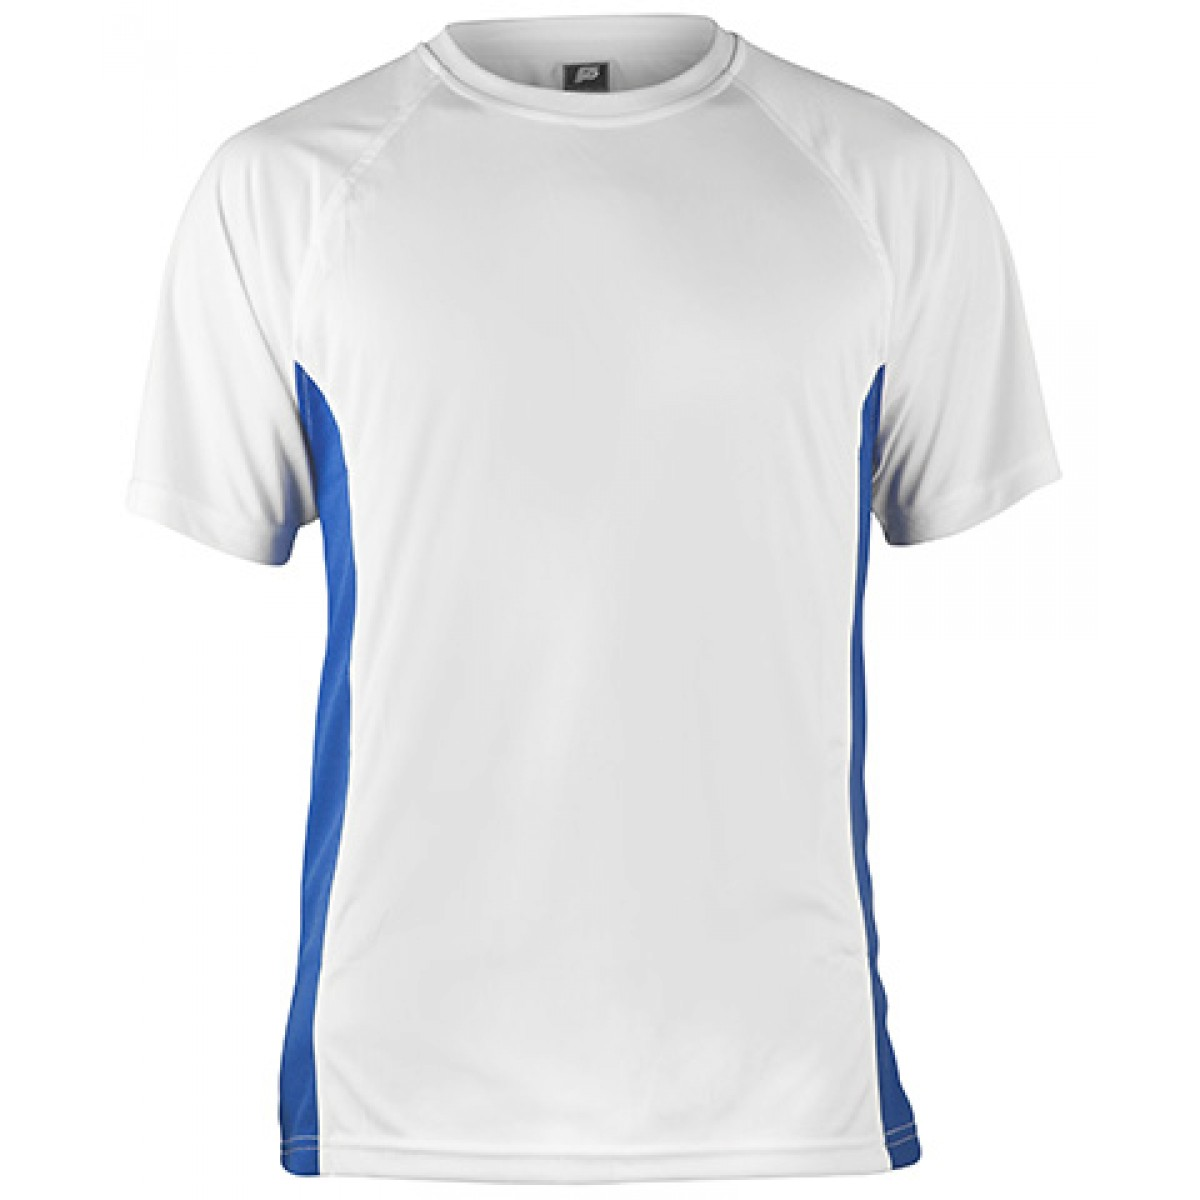 Short Sleeves Performance With Grey Side Insert